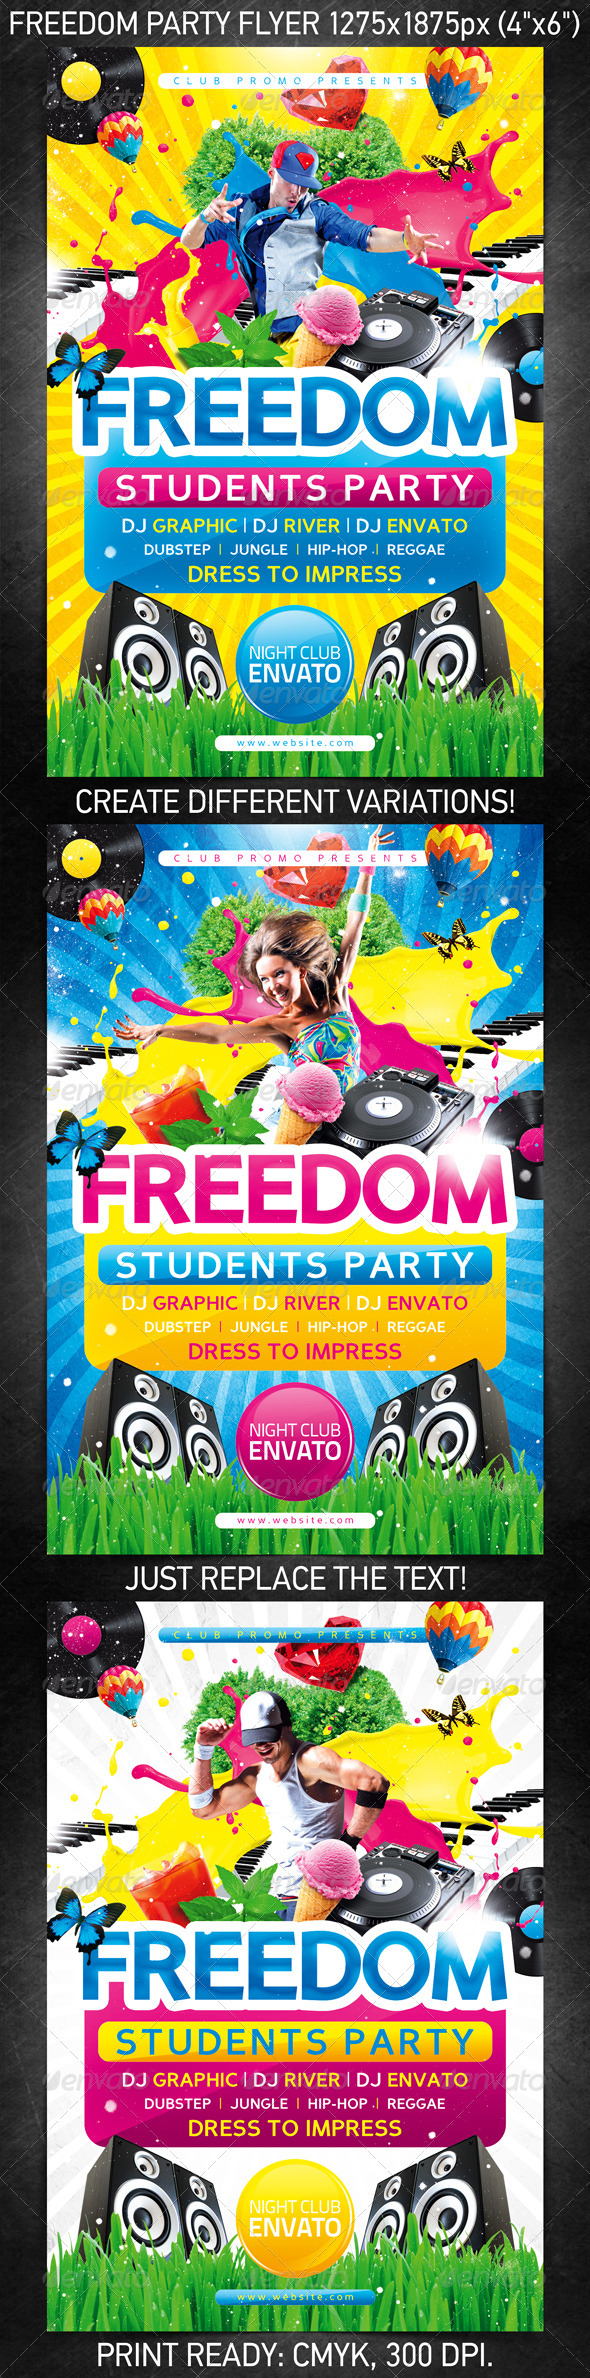 Freedom Party Flyer - Clubs & Parties Events